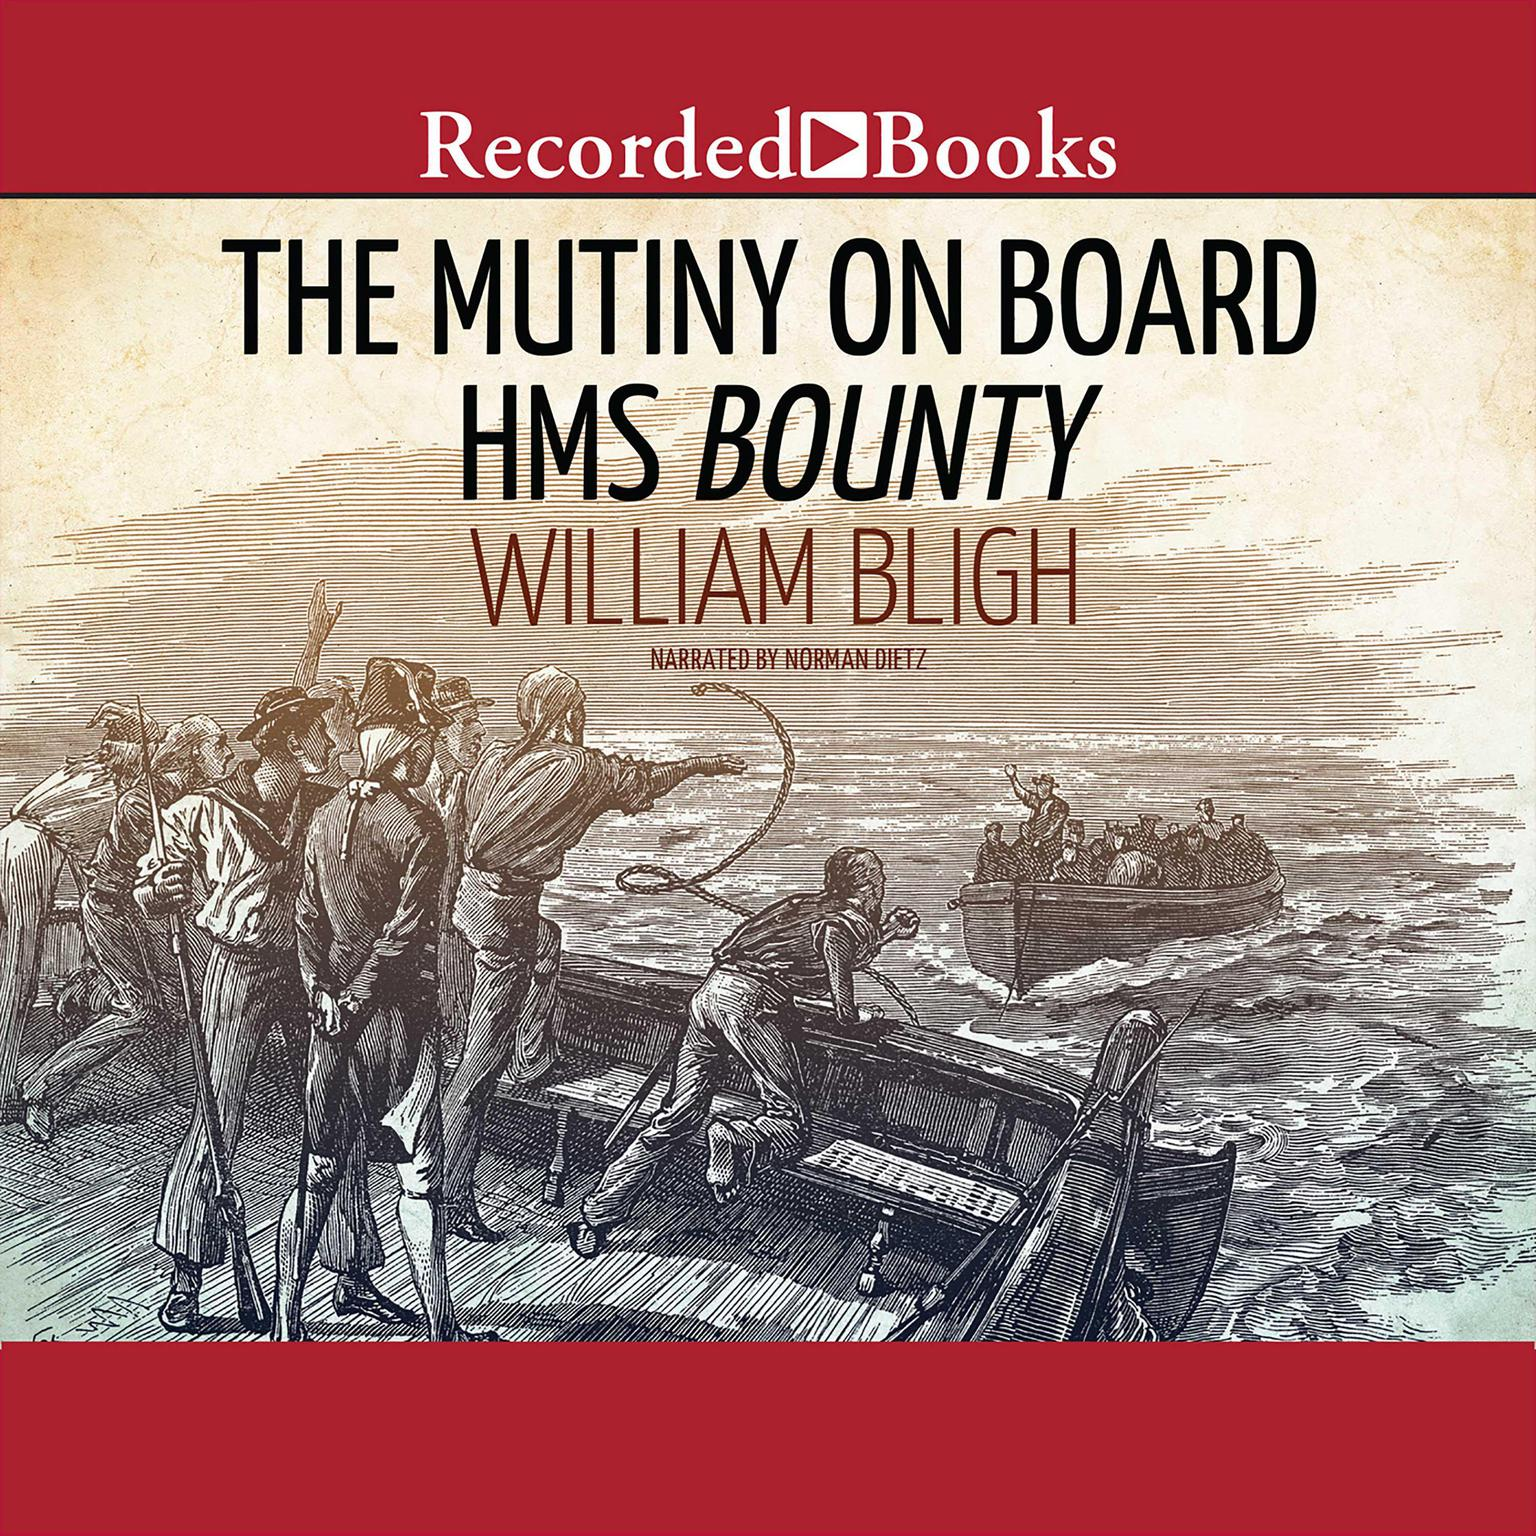 Printable The Mutiny on Board H.M.S. Bounty: A Voyage to the South Sea and the Terrible Mutiny on Board Audiobook Cover Art